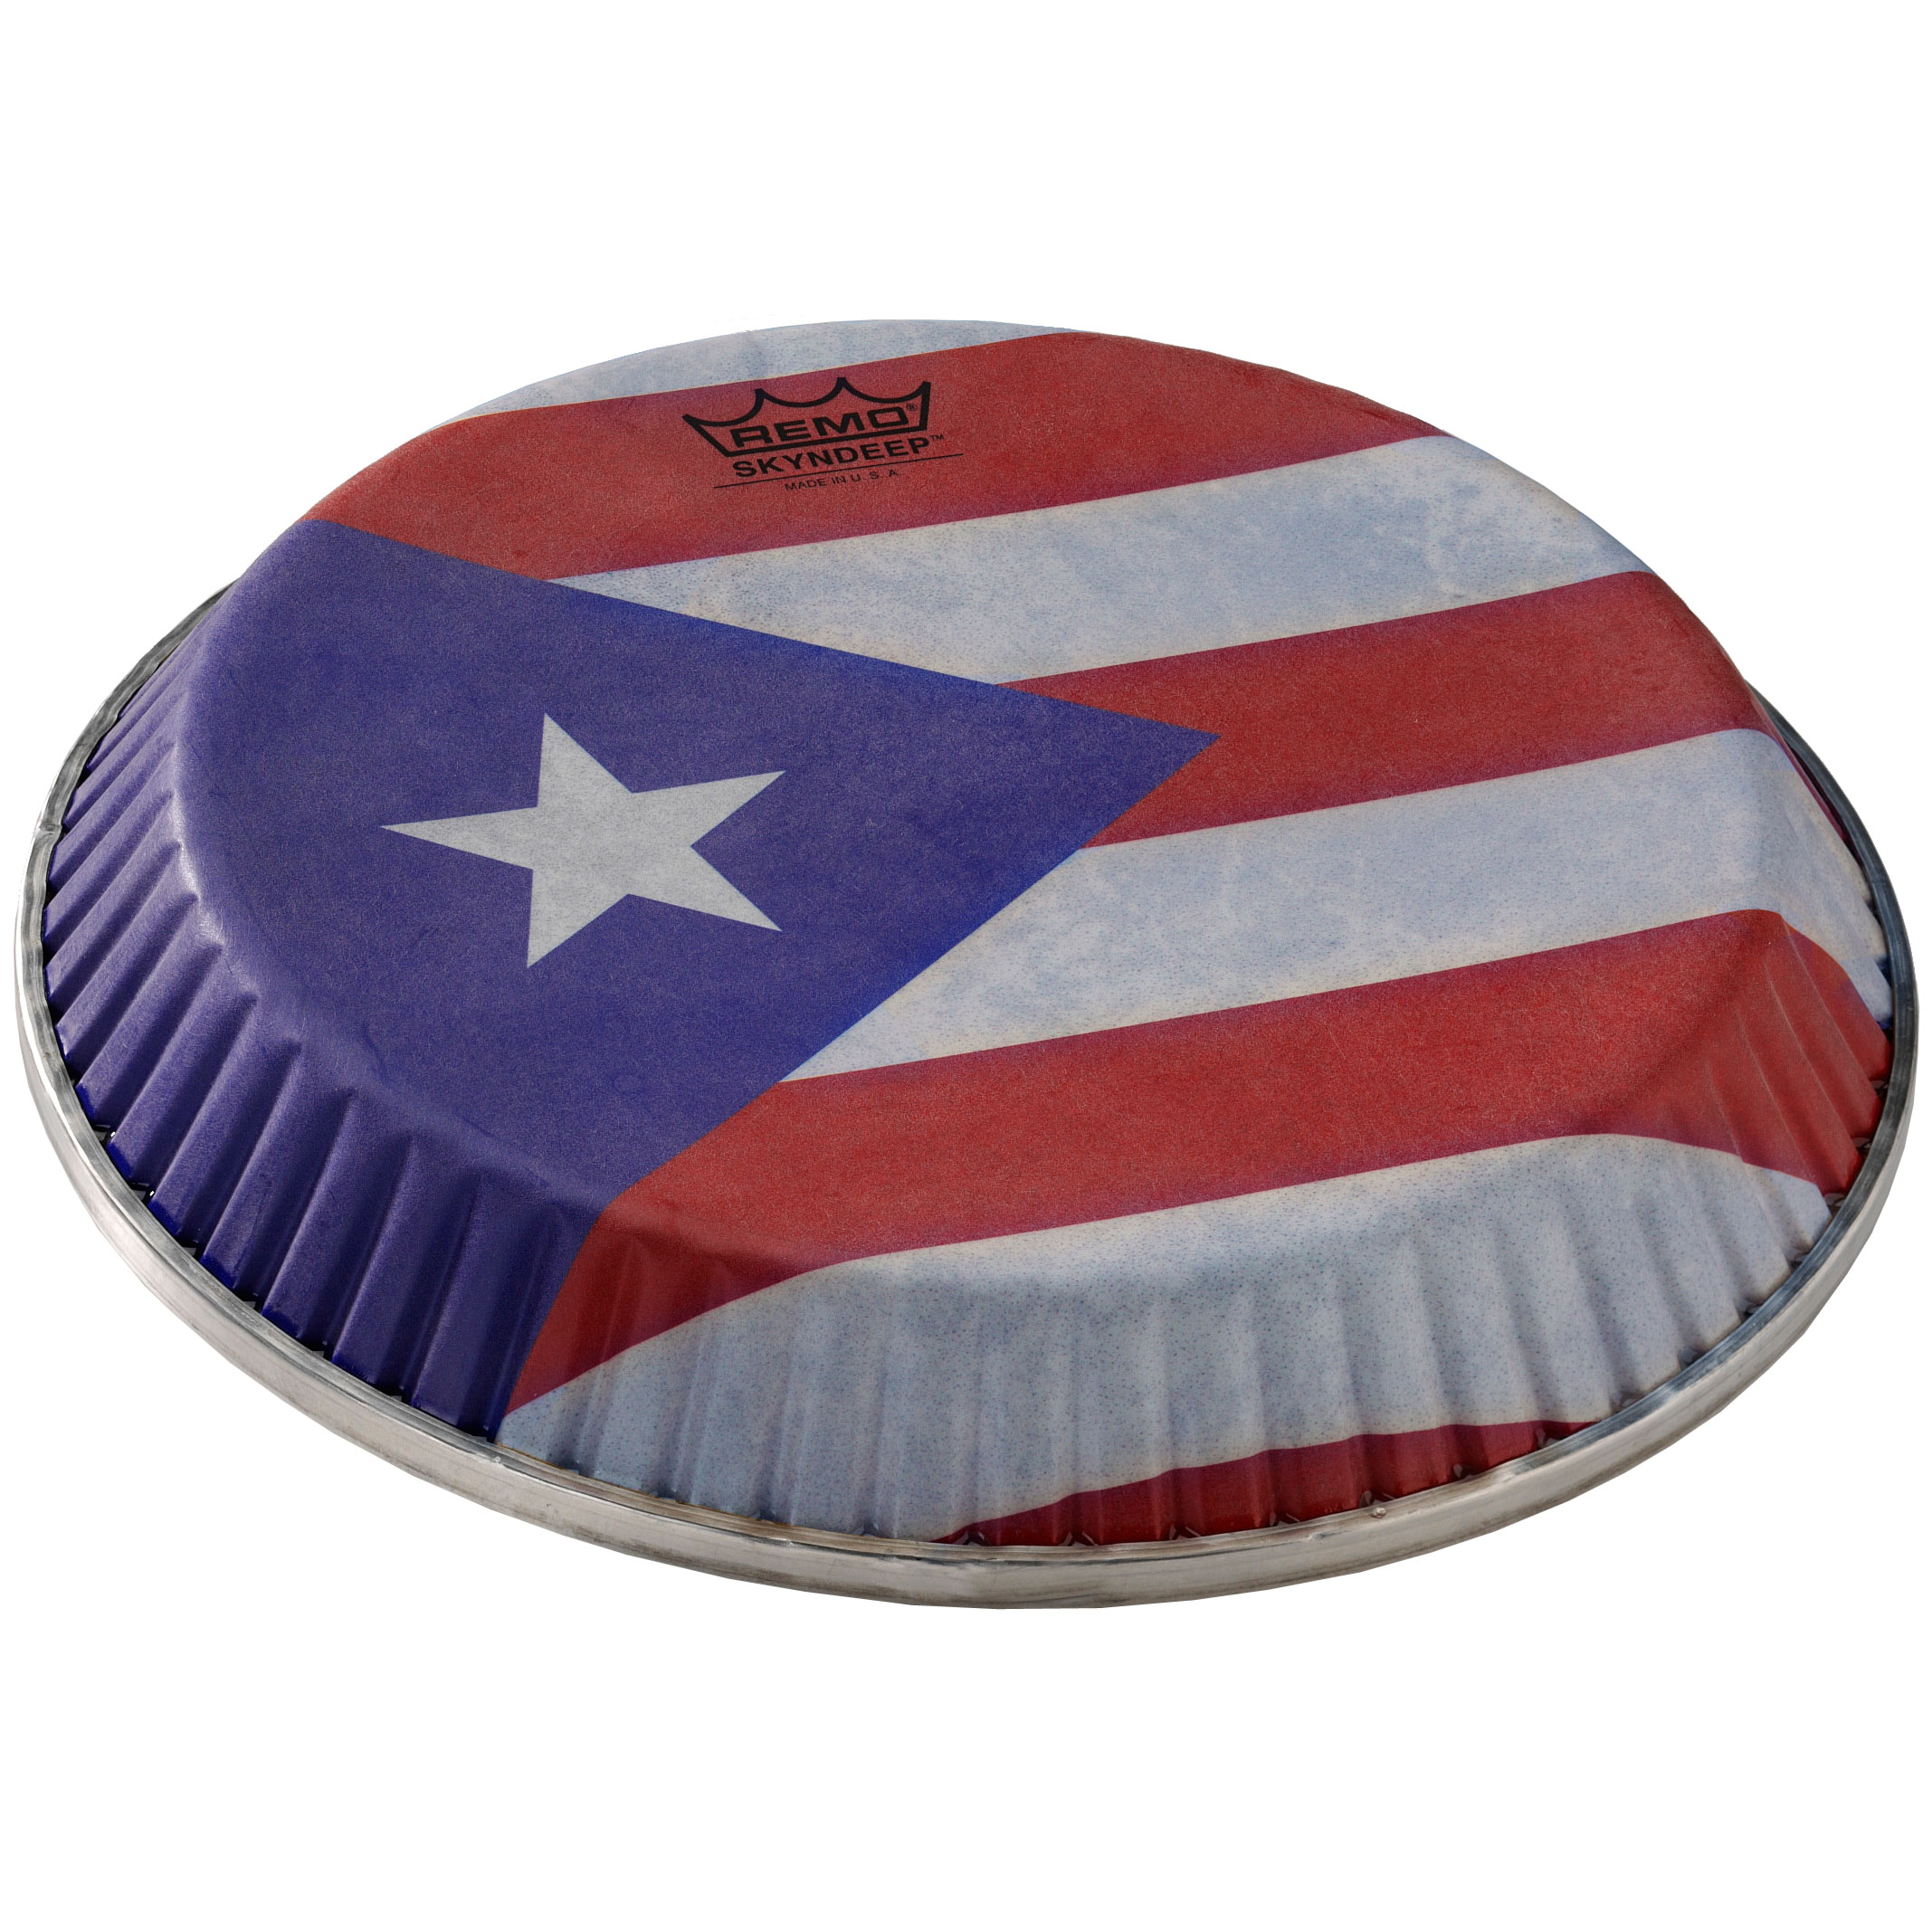 "Remo 11.75"" Symmetry Skyndeep Conga Drum Head (D4 Collar) with Puerto Rican Flag Graphic"